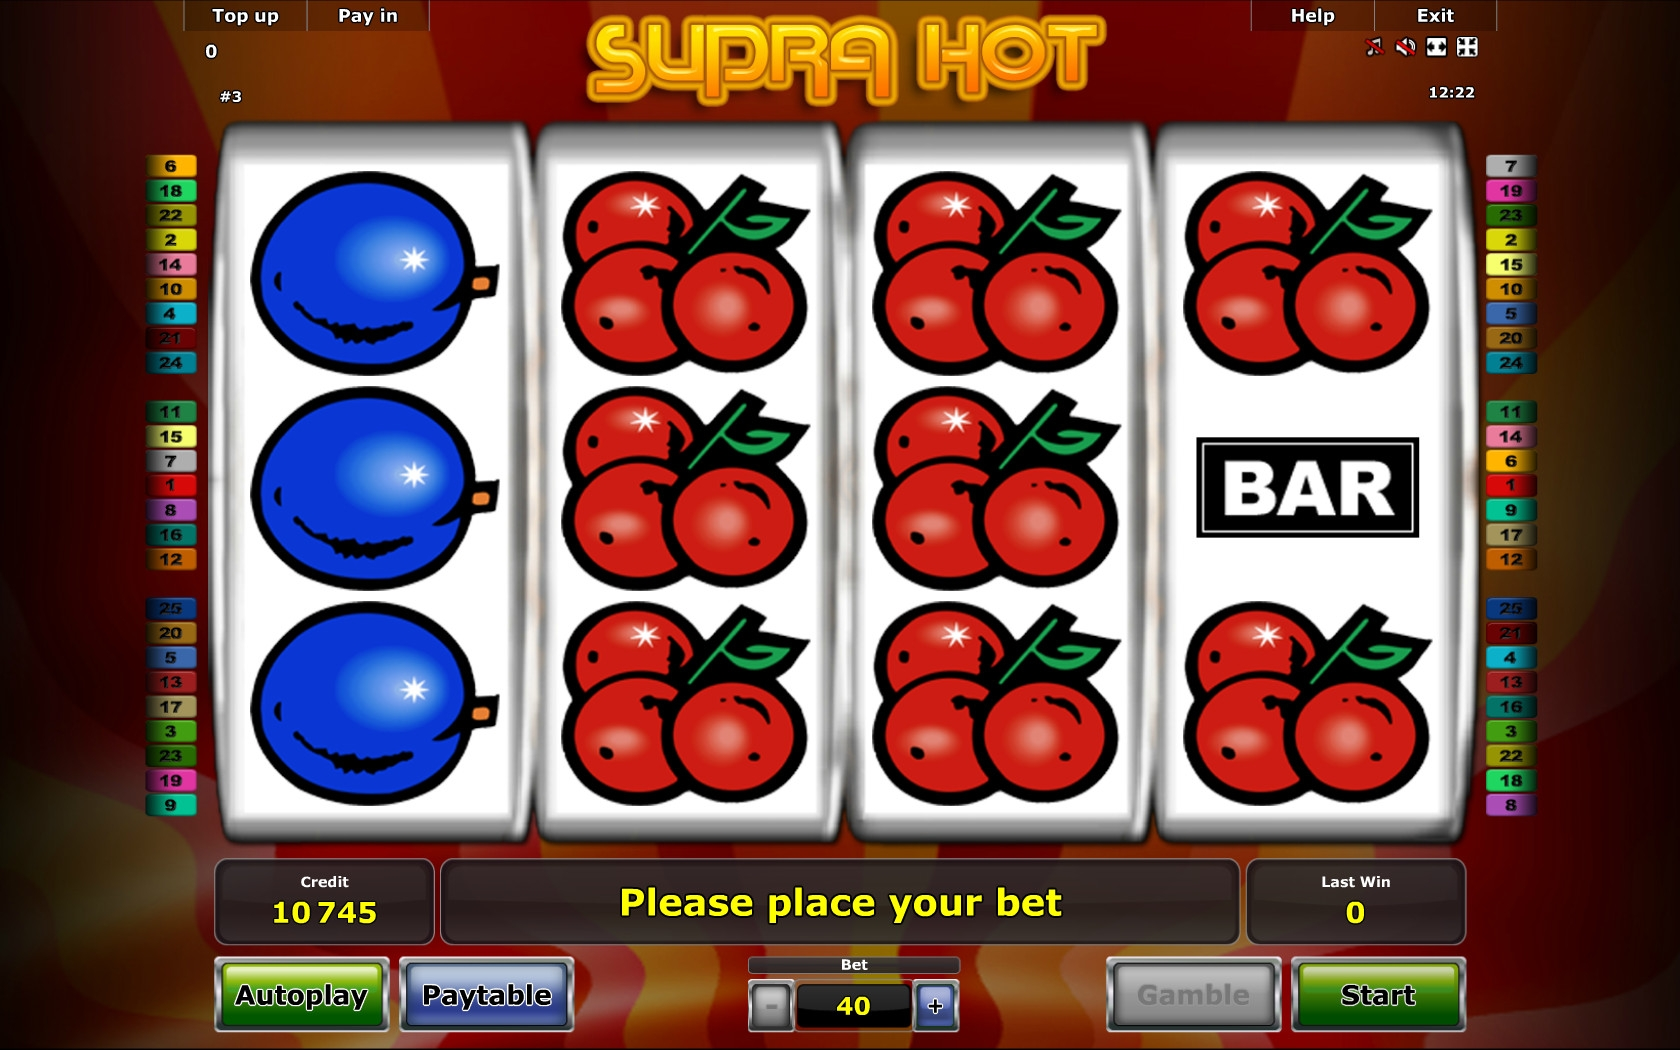 supra hot casino game